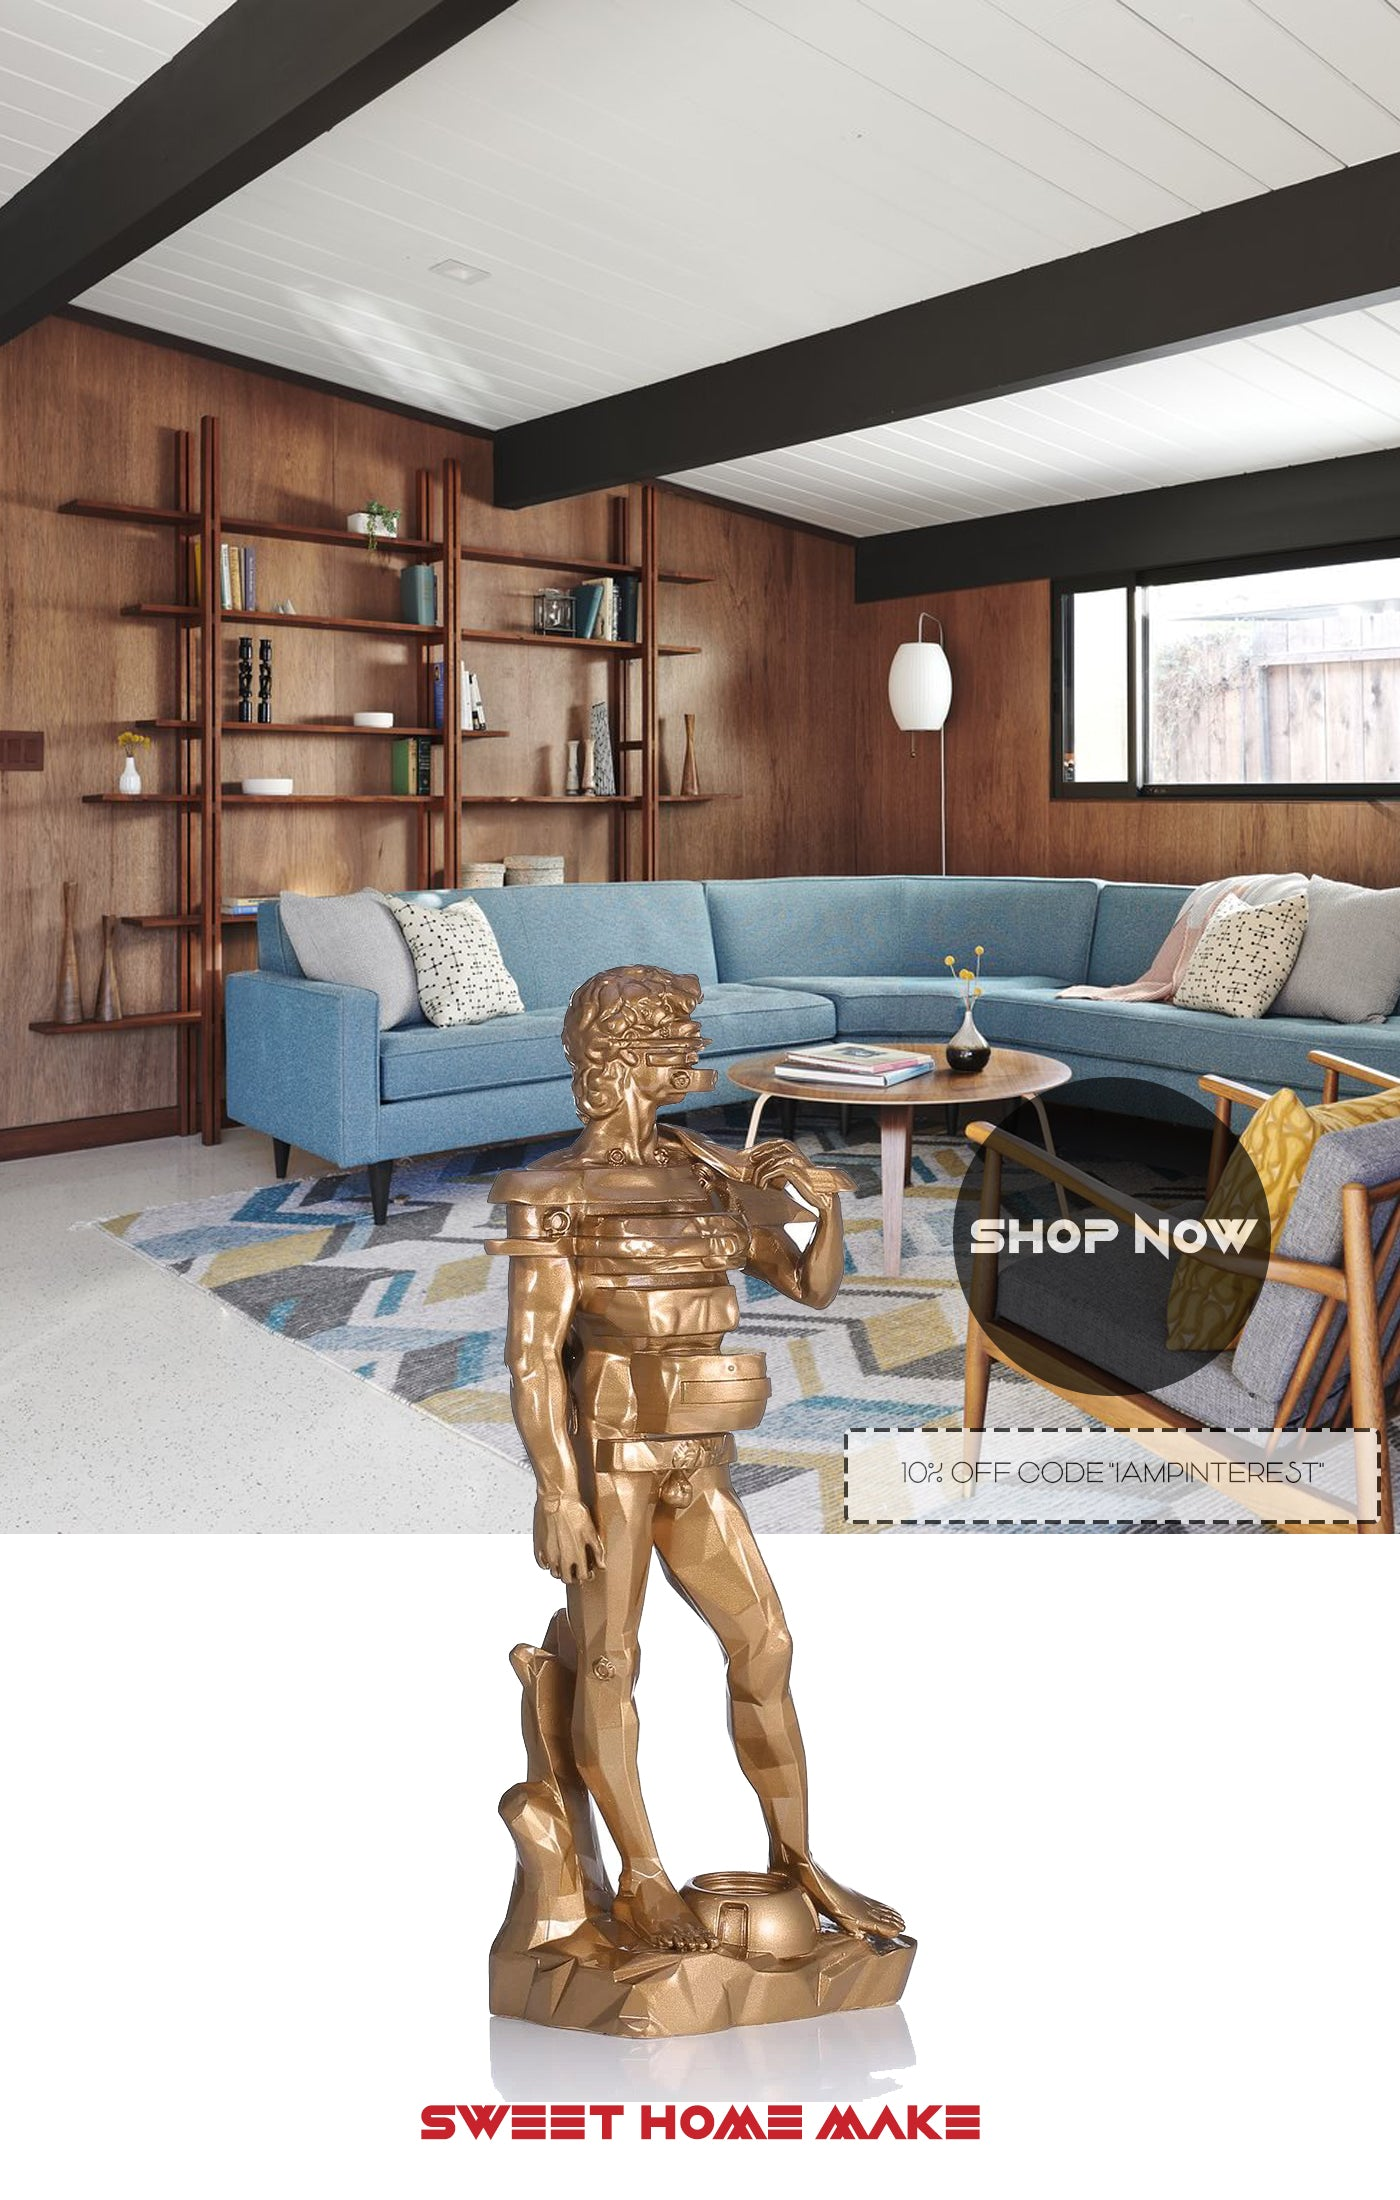 Statue Of David Living Room Bookcase Decor